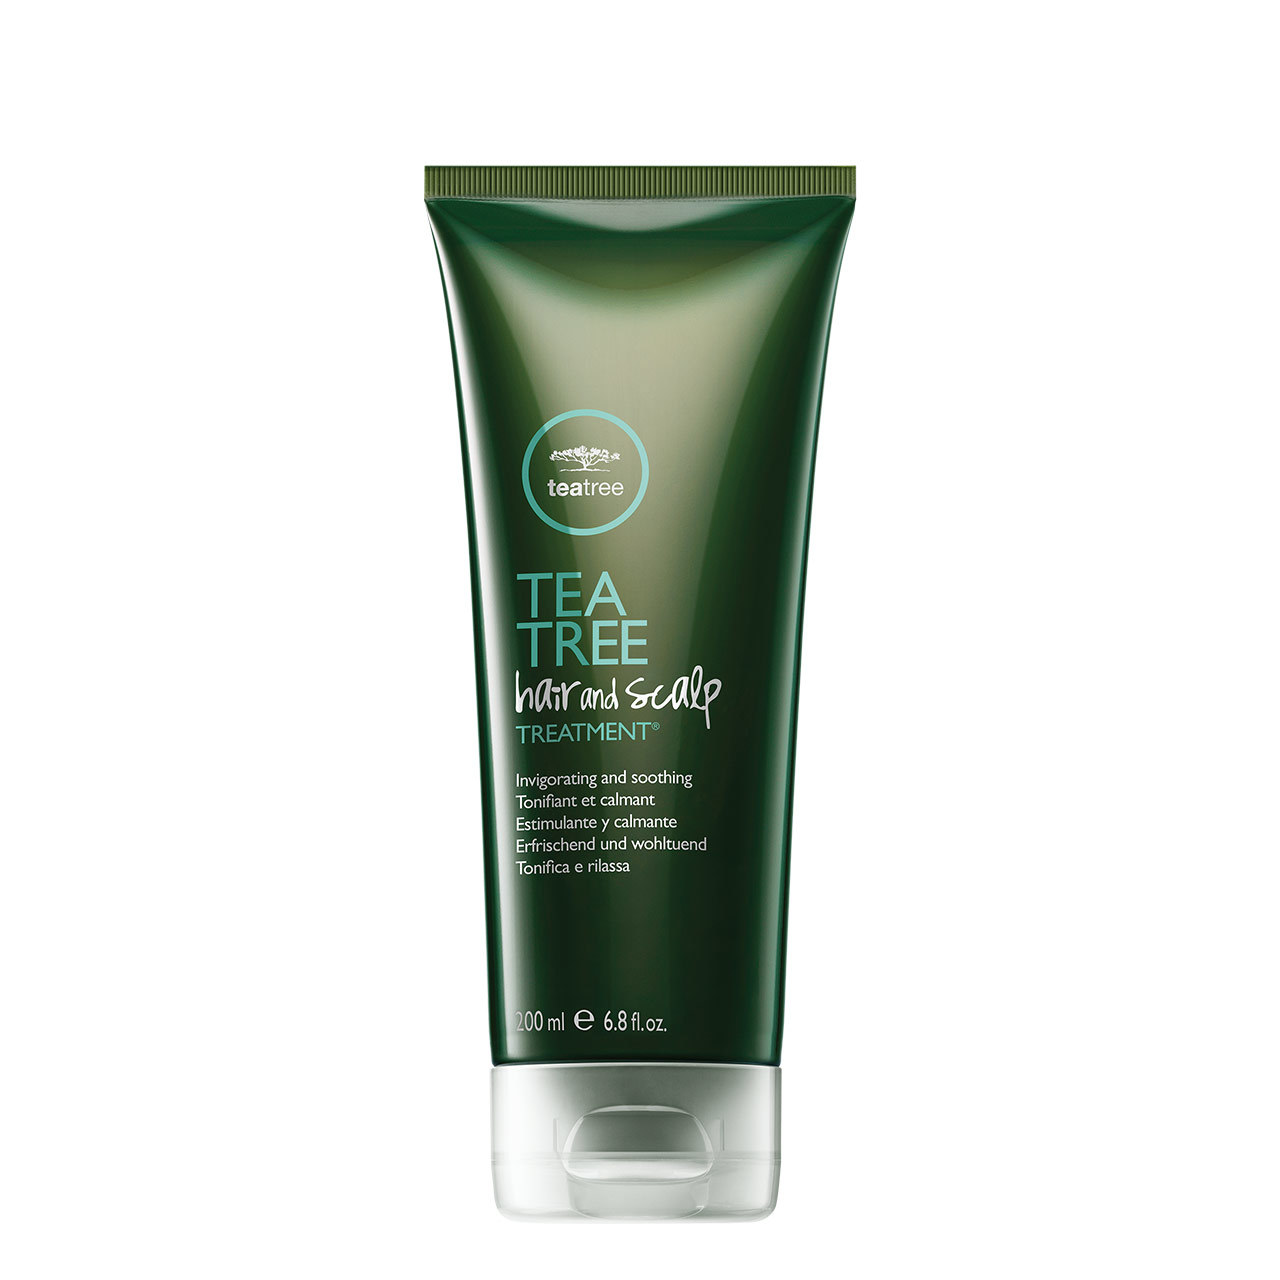 Tea Tree Hair & Scalp Treatment by Paul Mitchell